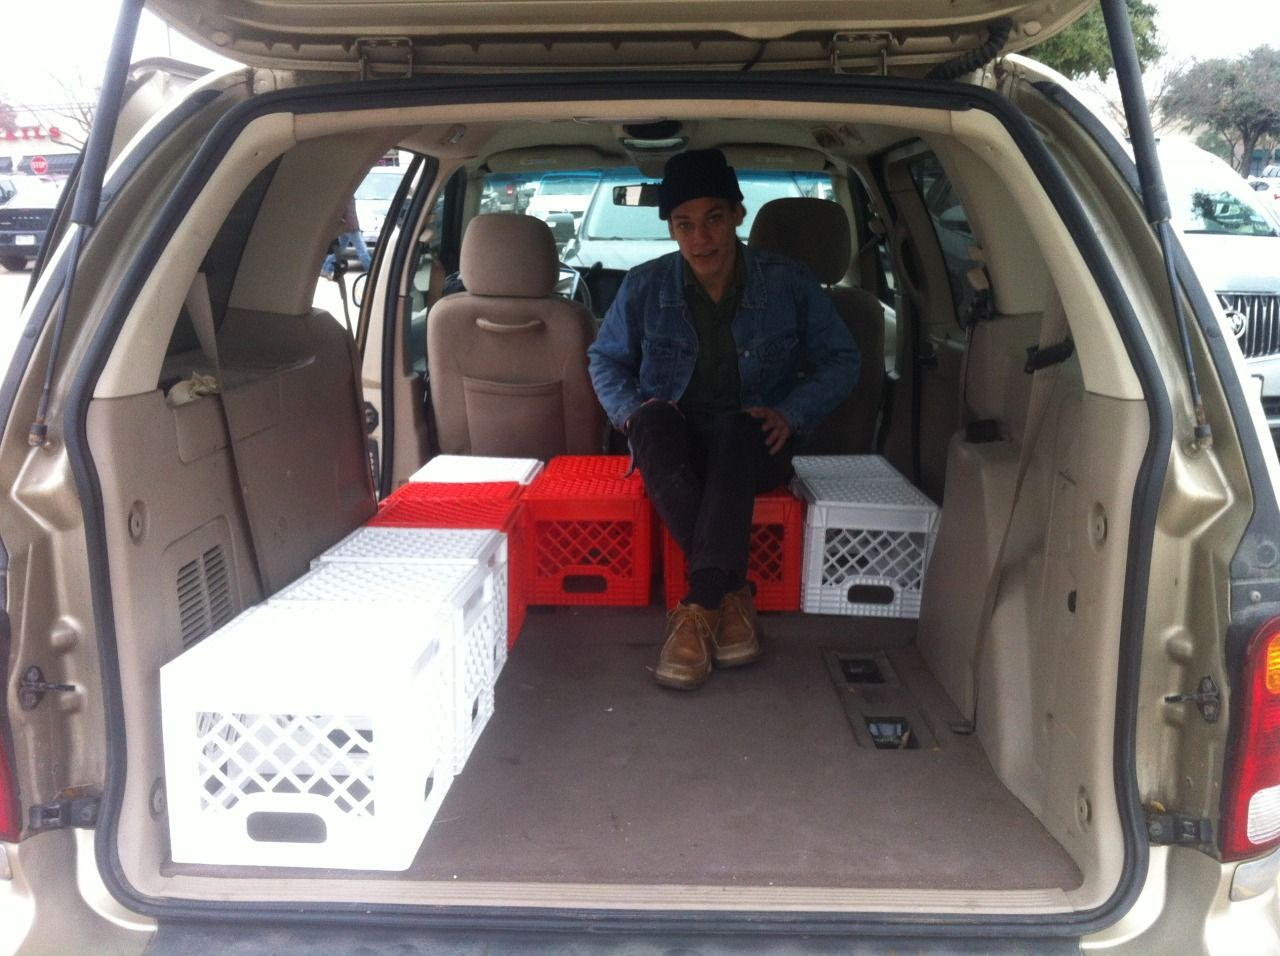 How To Convert A Minivan To A Camper We Converted Our 2001 Ford Windstar Minivan To A Comfortable Camper With Plenty Of Stor Mini Van Minivan Camping Cool Vans